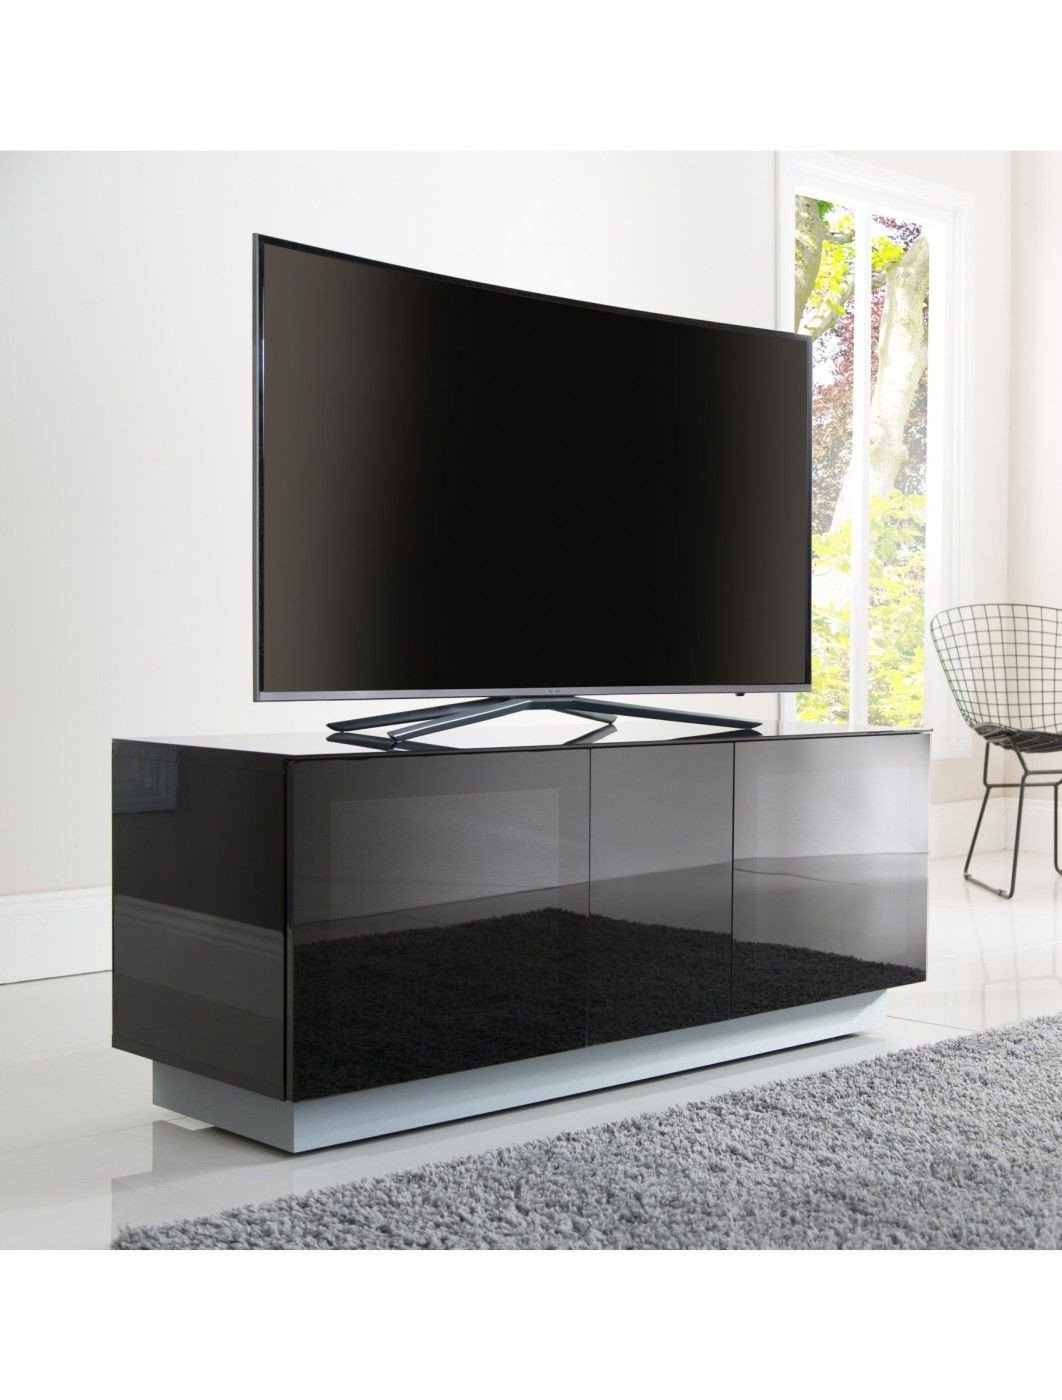 Small Tv Stand for Bedroom Lovely Alphason Element Modular 1250xl Glass top Tv Stand Emt1250xl